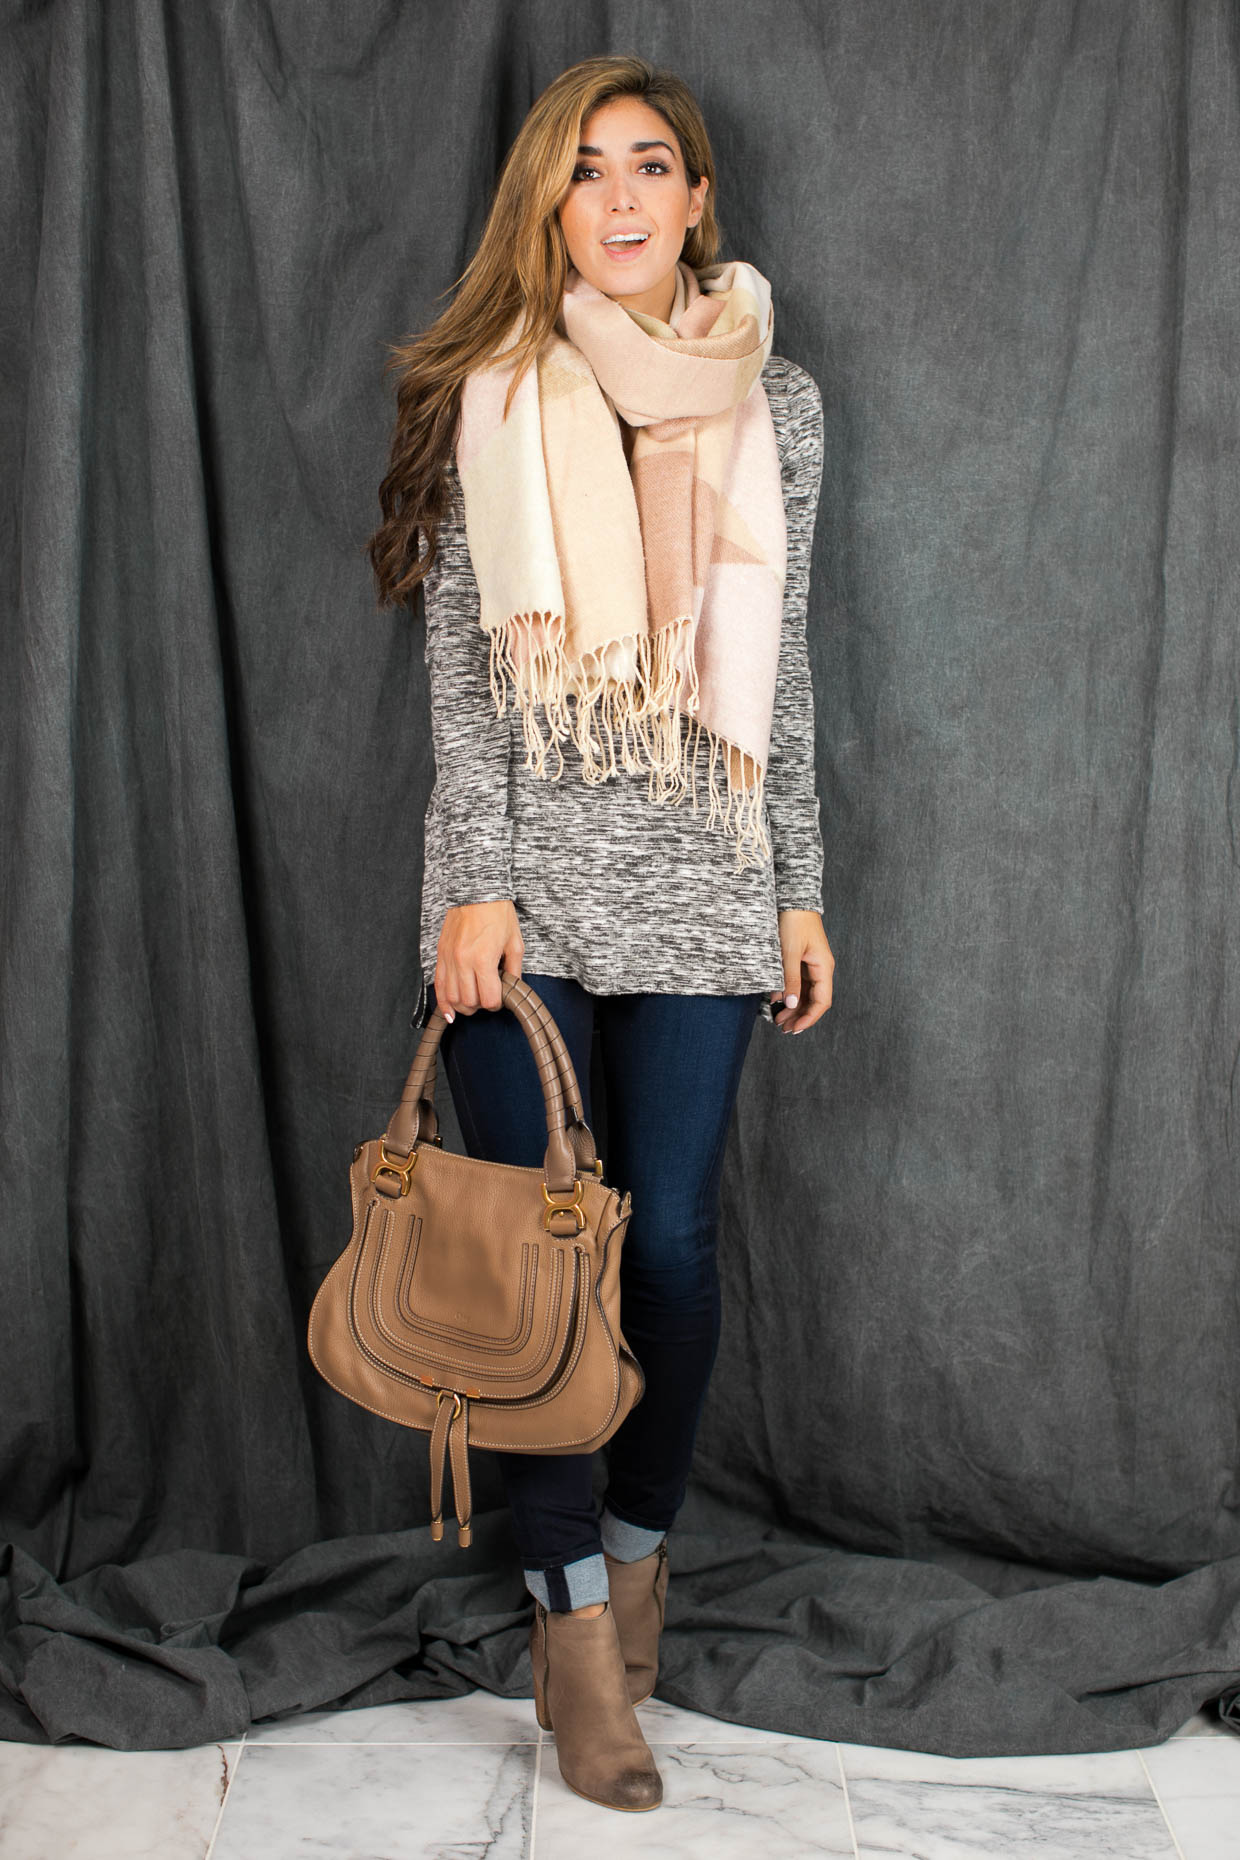 The Darling Detail is wearing a Splendid Silver Mountain Jersey V Neck Tunic, The Jegging by Splendid, a blanket scarf and is holding the Chloe Marcie Medium Satchel Bag.